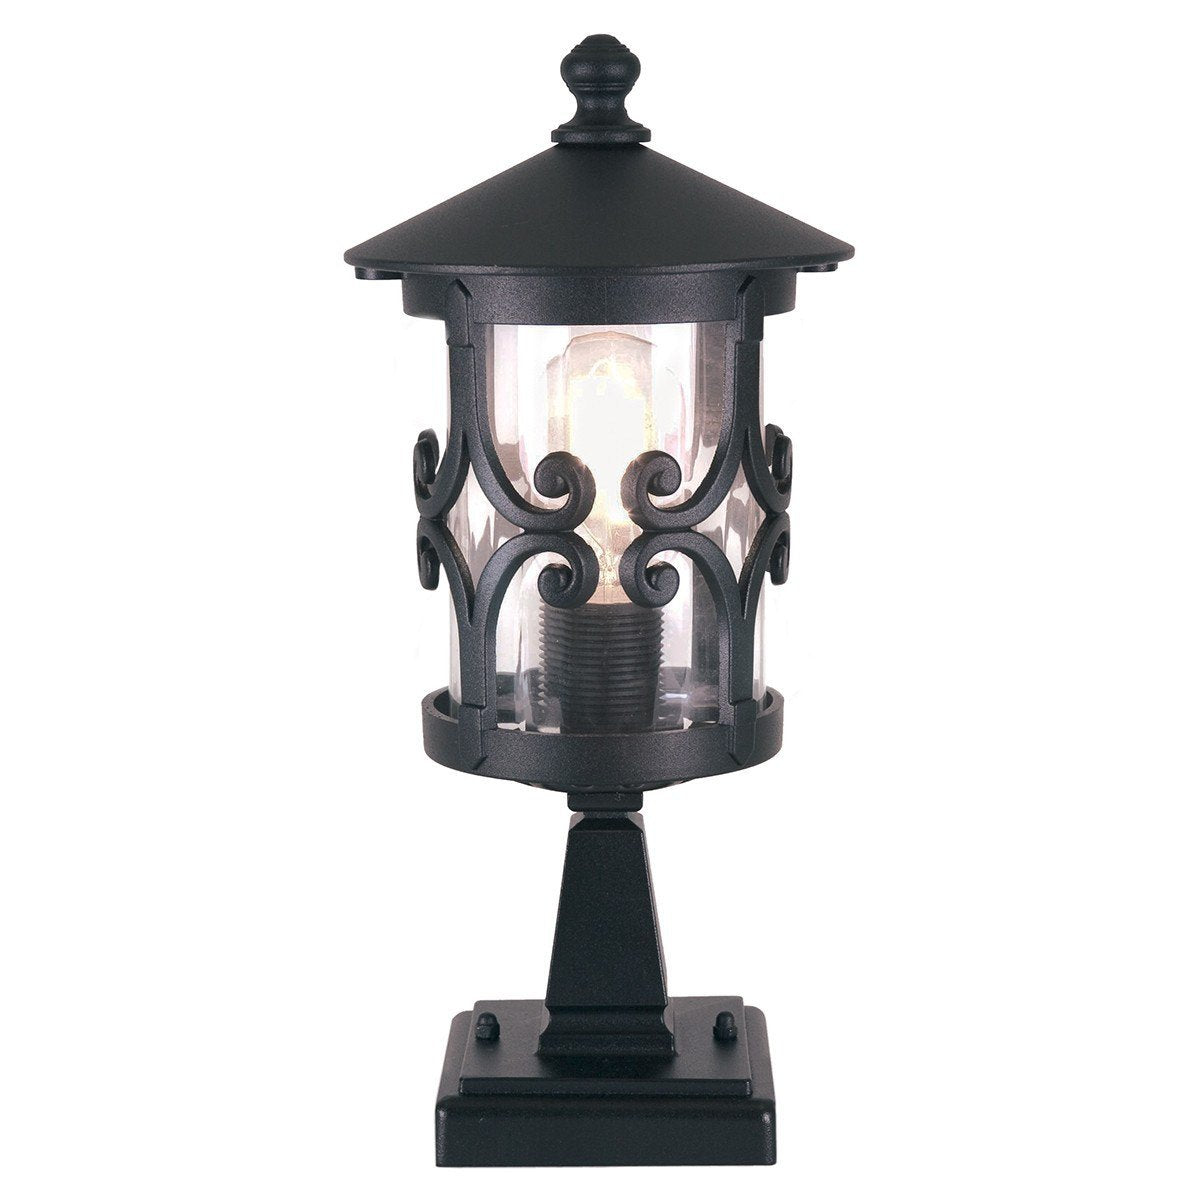 Hereford Pedestal Lantern Black - London Lighting - 1